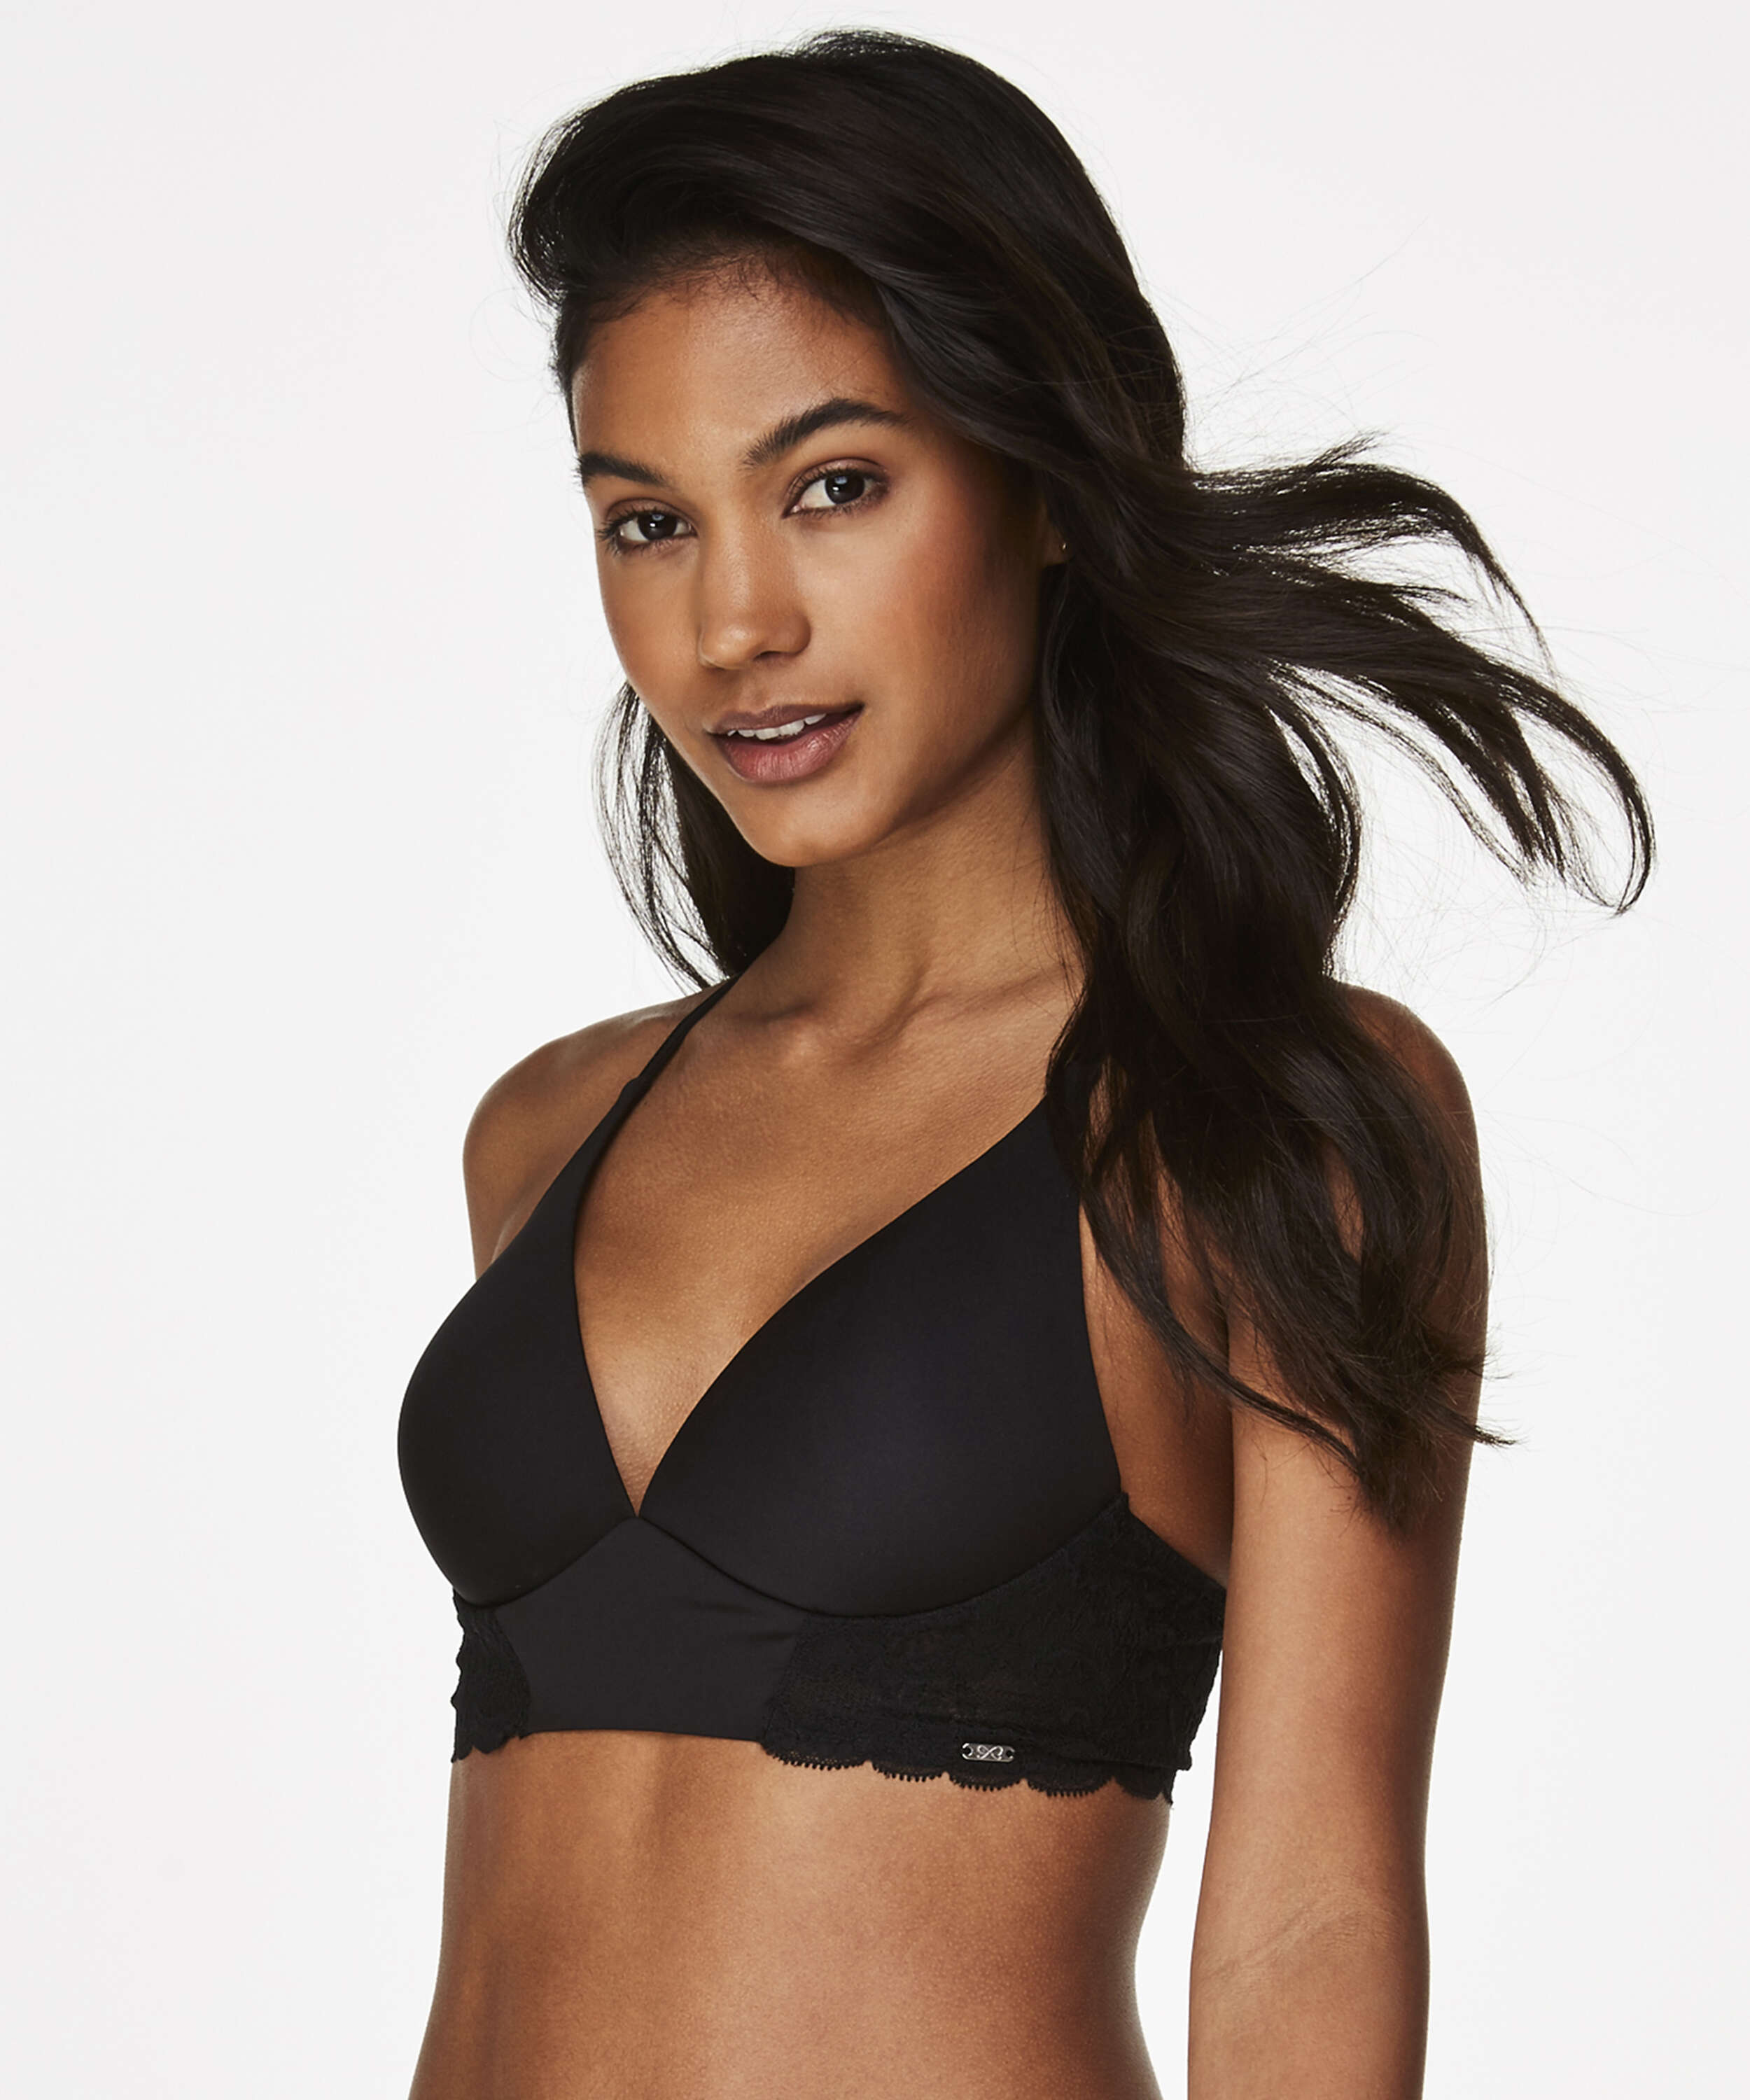 Hope Lace Padded Non-Underwired Bra, Black, main